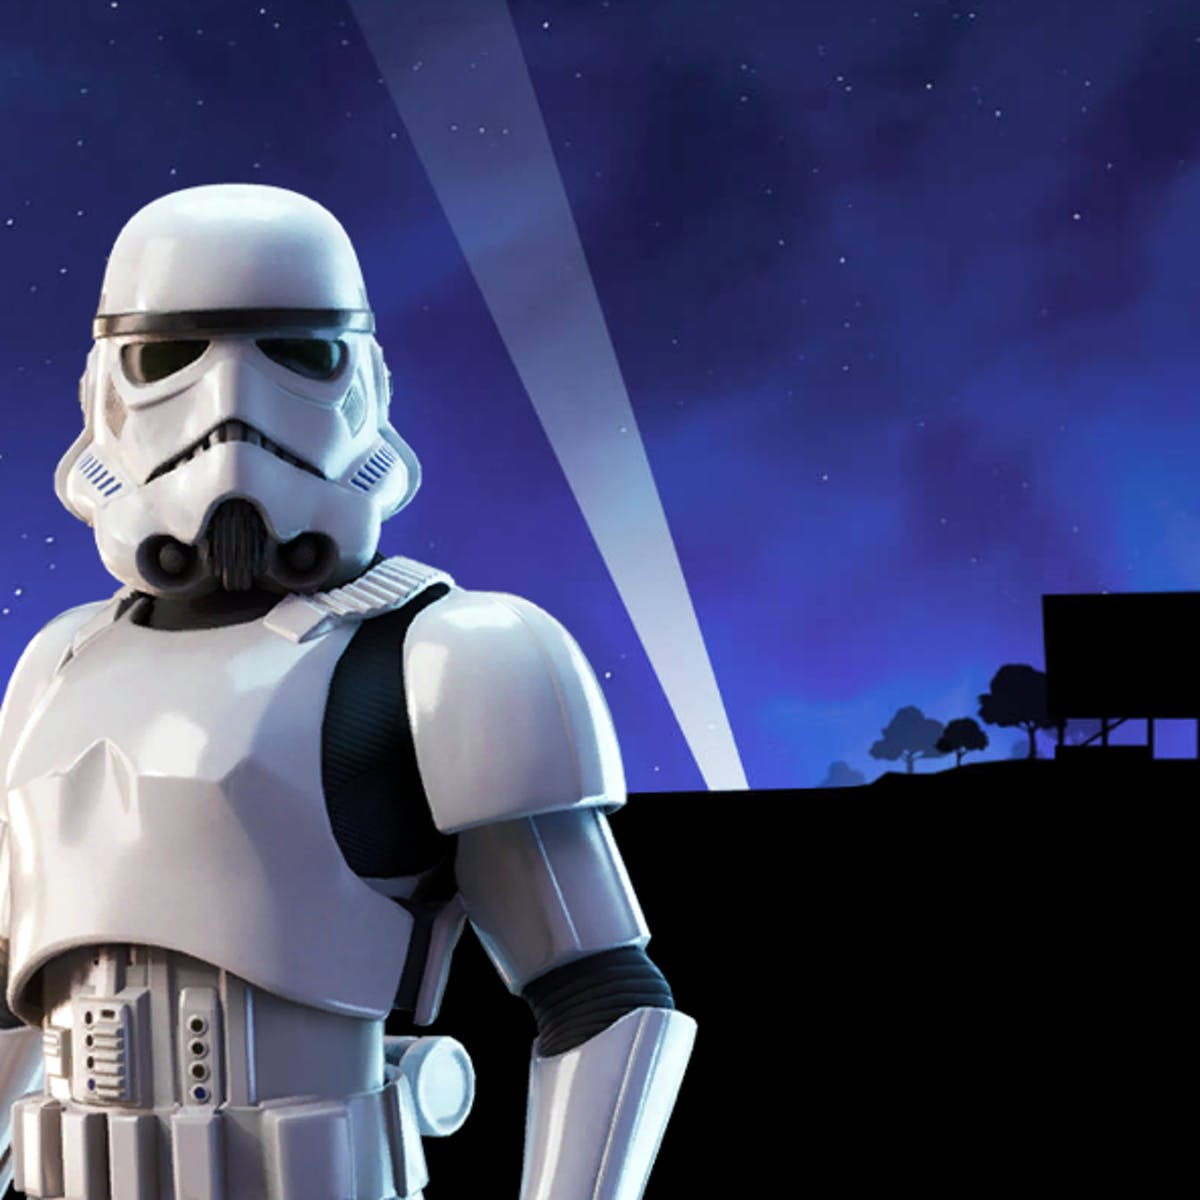 'Fortnite' Star Wars event could be teasing an epic new in-game challenge